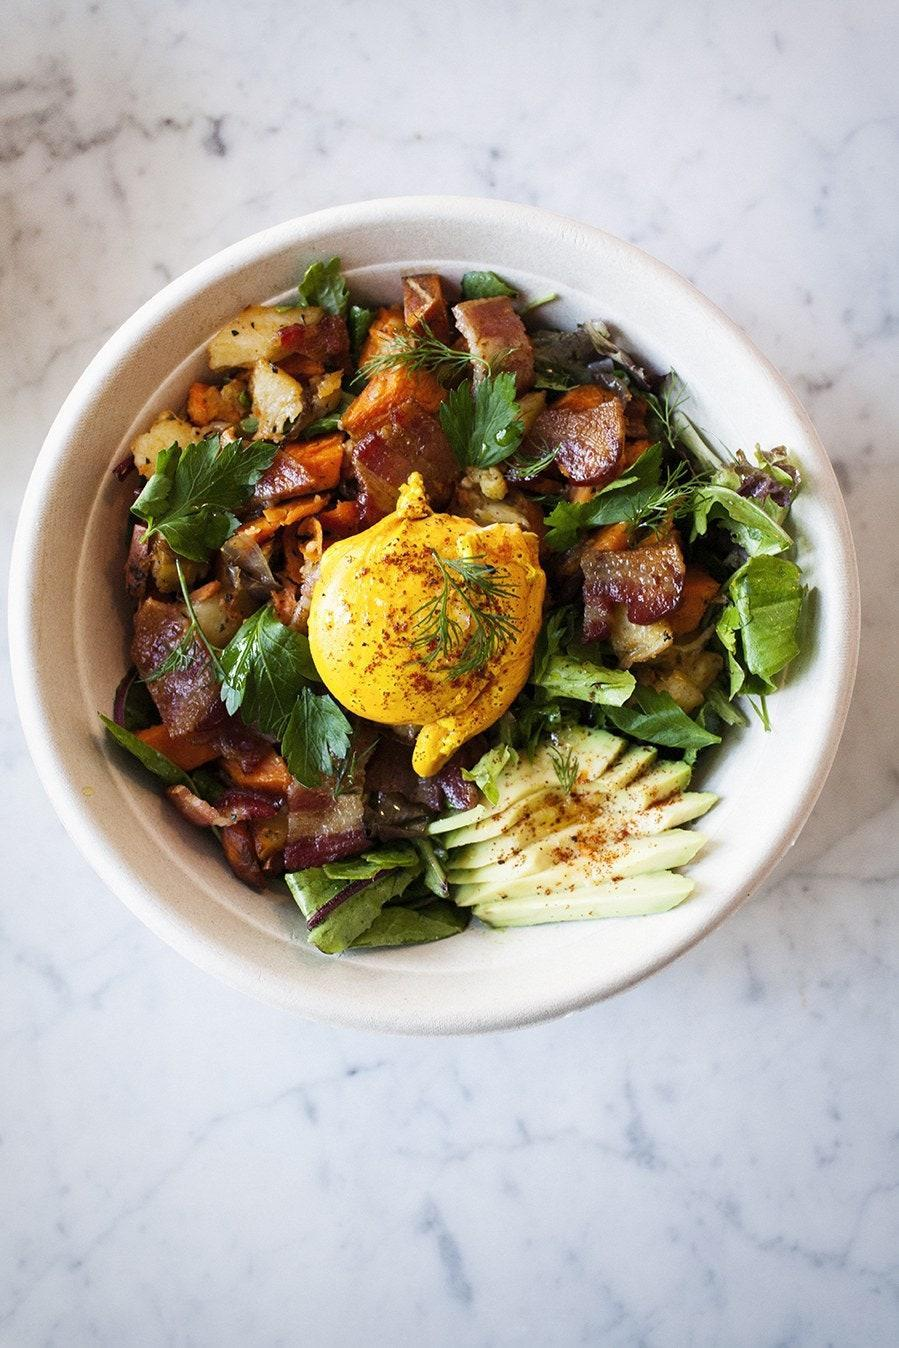 """<a href=""""https://www.bonappetit.com/recipe/breakfast-bowl-with-sweet-potatoes-and-turmeric-egg?mbid=synd_yahoo_rss"""" rel=""""nofollow noopener"""" target=""""_blank"""" data-ylk=""""slk:See recipe."""" class=""""link rapid-noclick-resp"""">See recipe.</a>"""